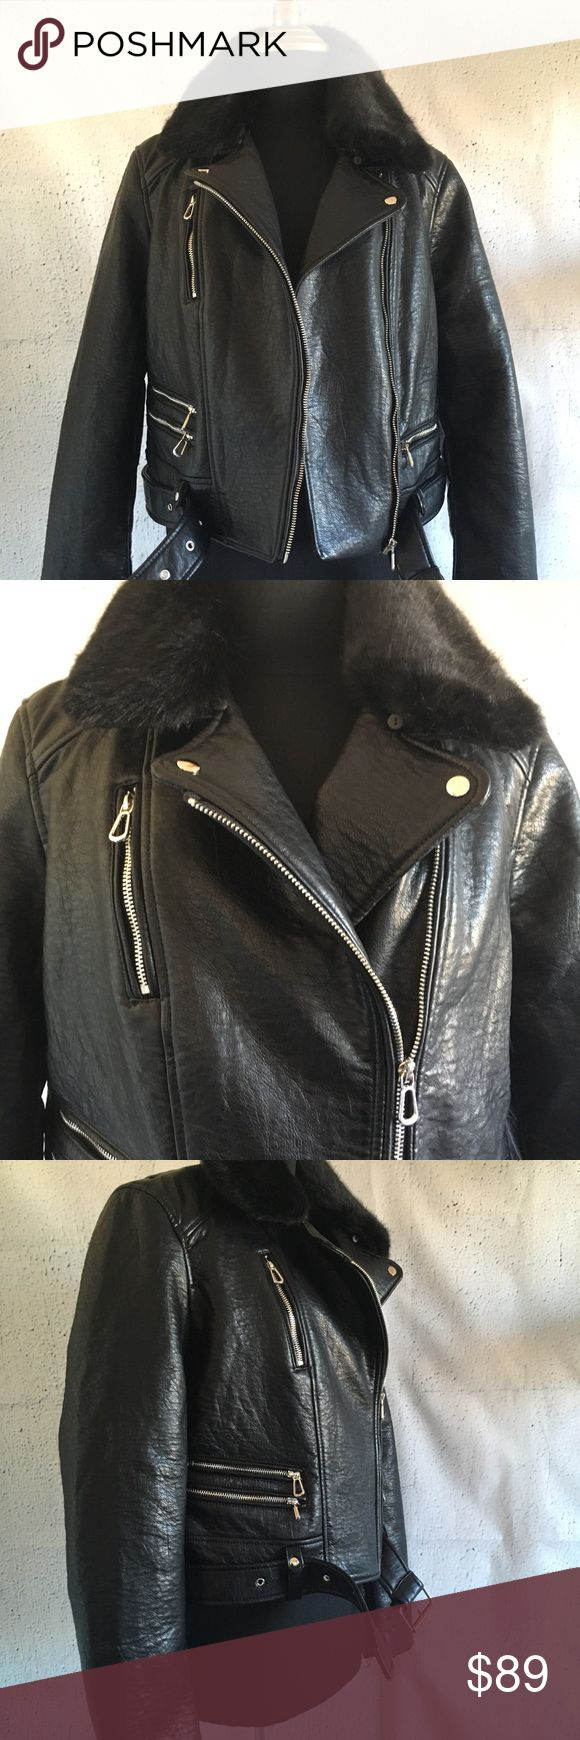 Zara TRF Faux Leather Moto Biker Jacket Large Moto biker